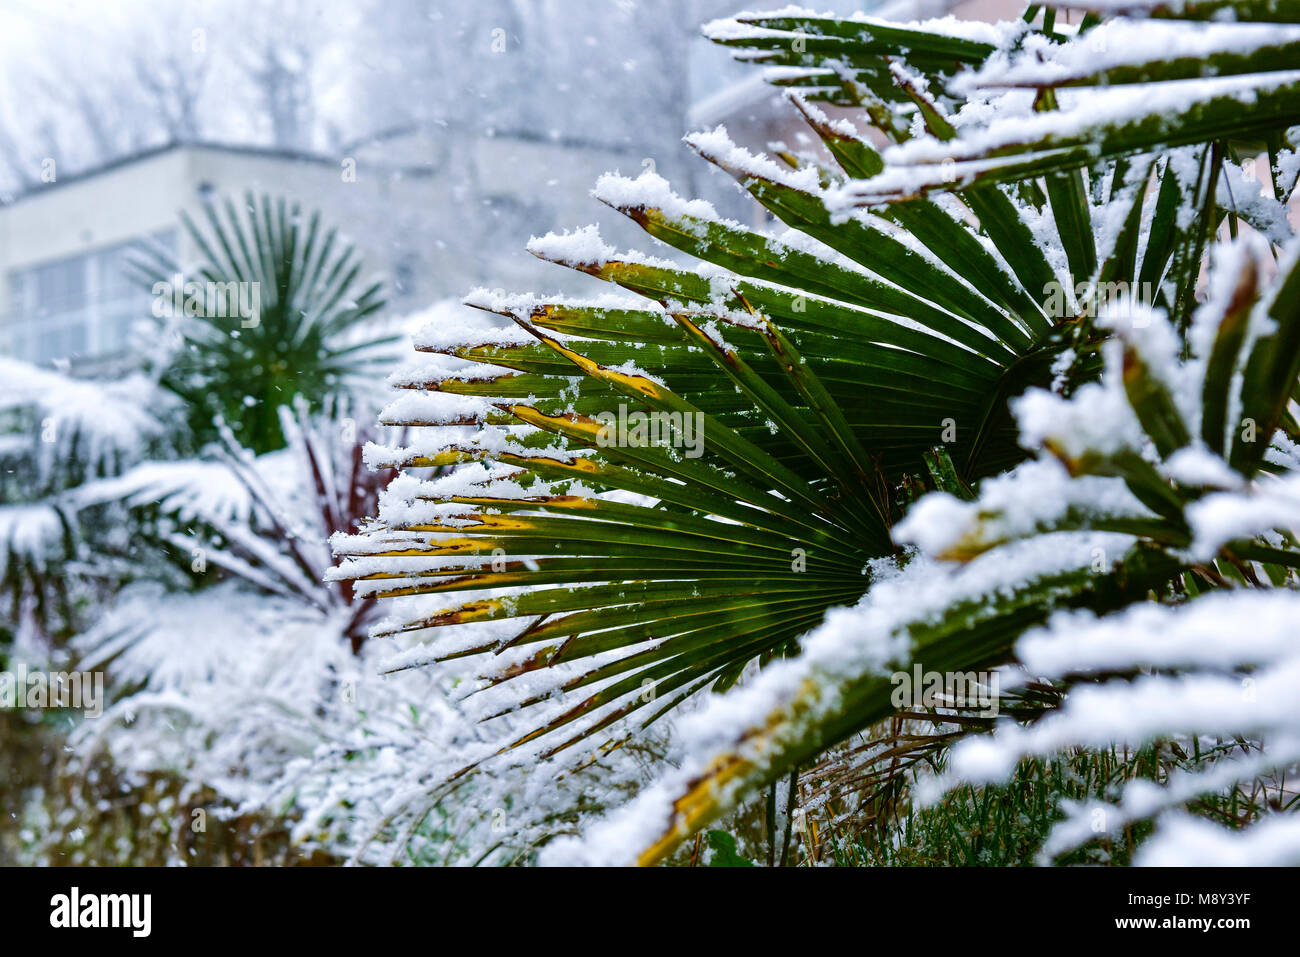 Unusal weather conditions in Cornwall with snow falling on Trachycarpus fortunei Chusan Palm in Newquay Cornwall. - Stock Image